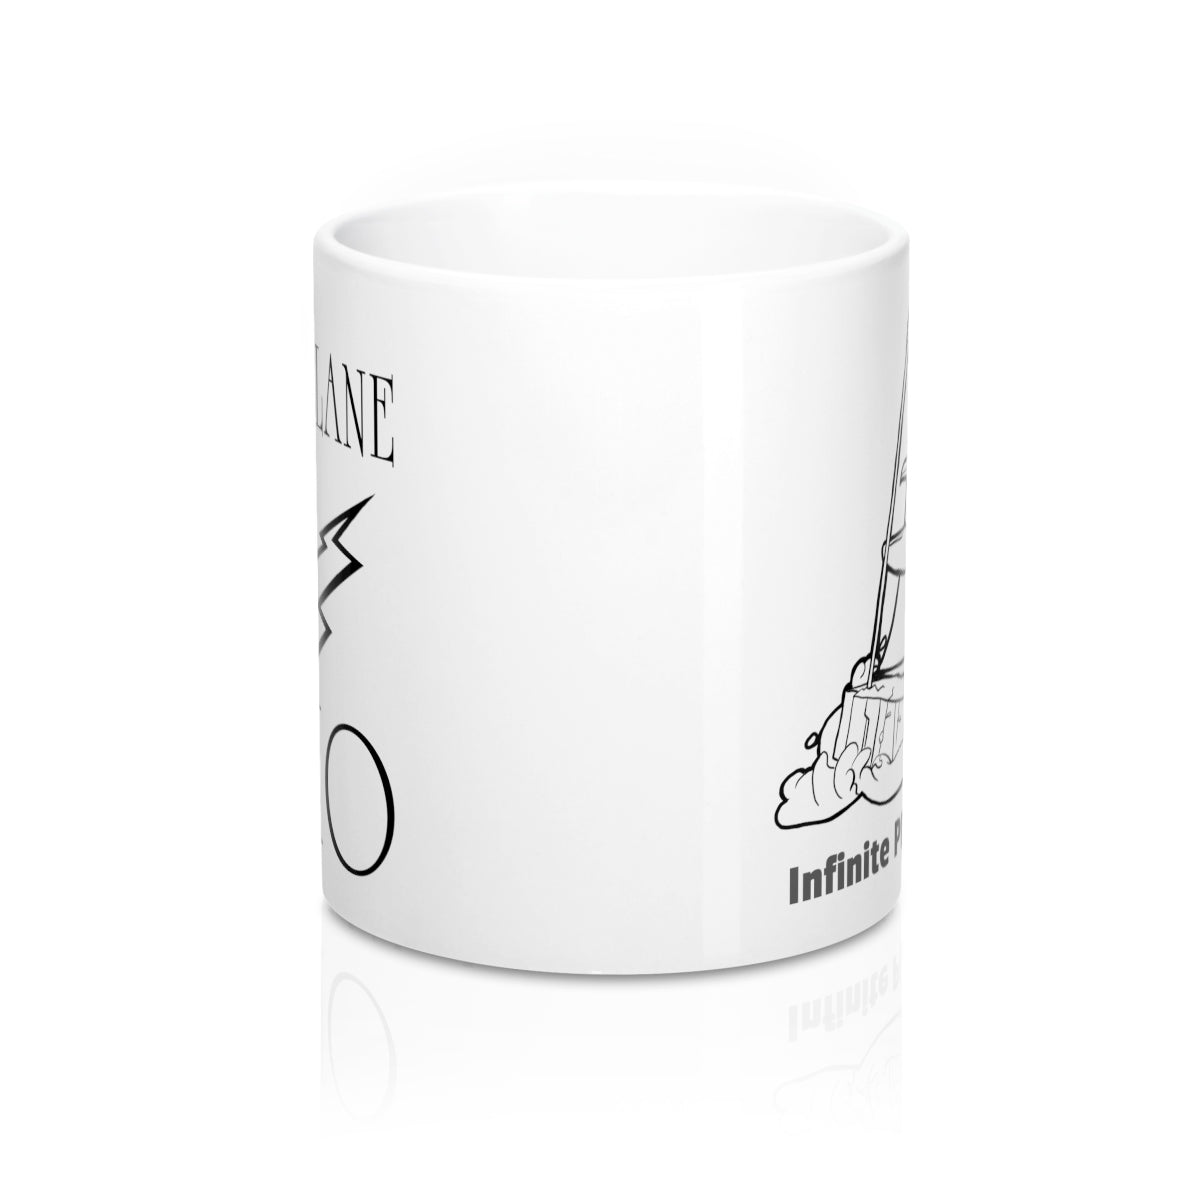 Infinite Plane Radio, Penguin on Ice Boat/ Mug 11oz